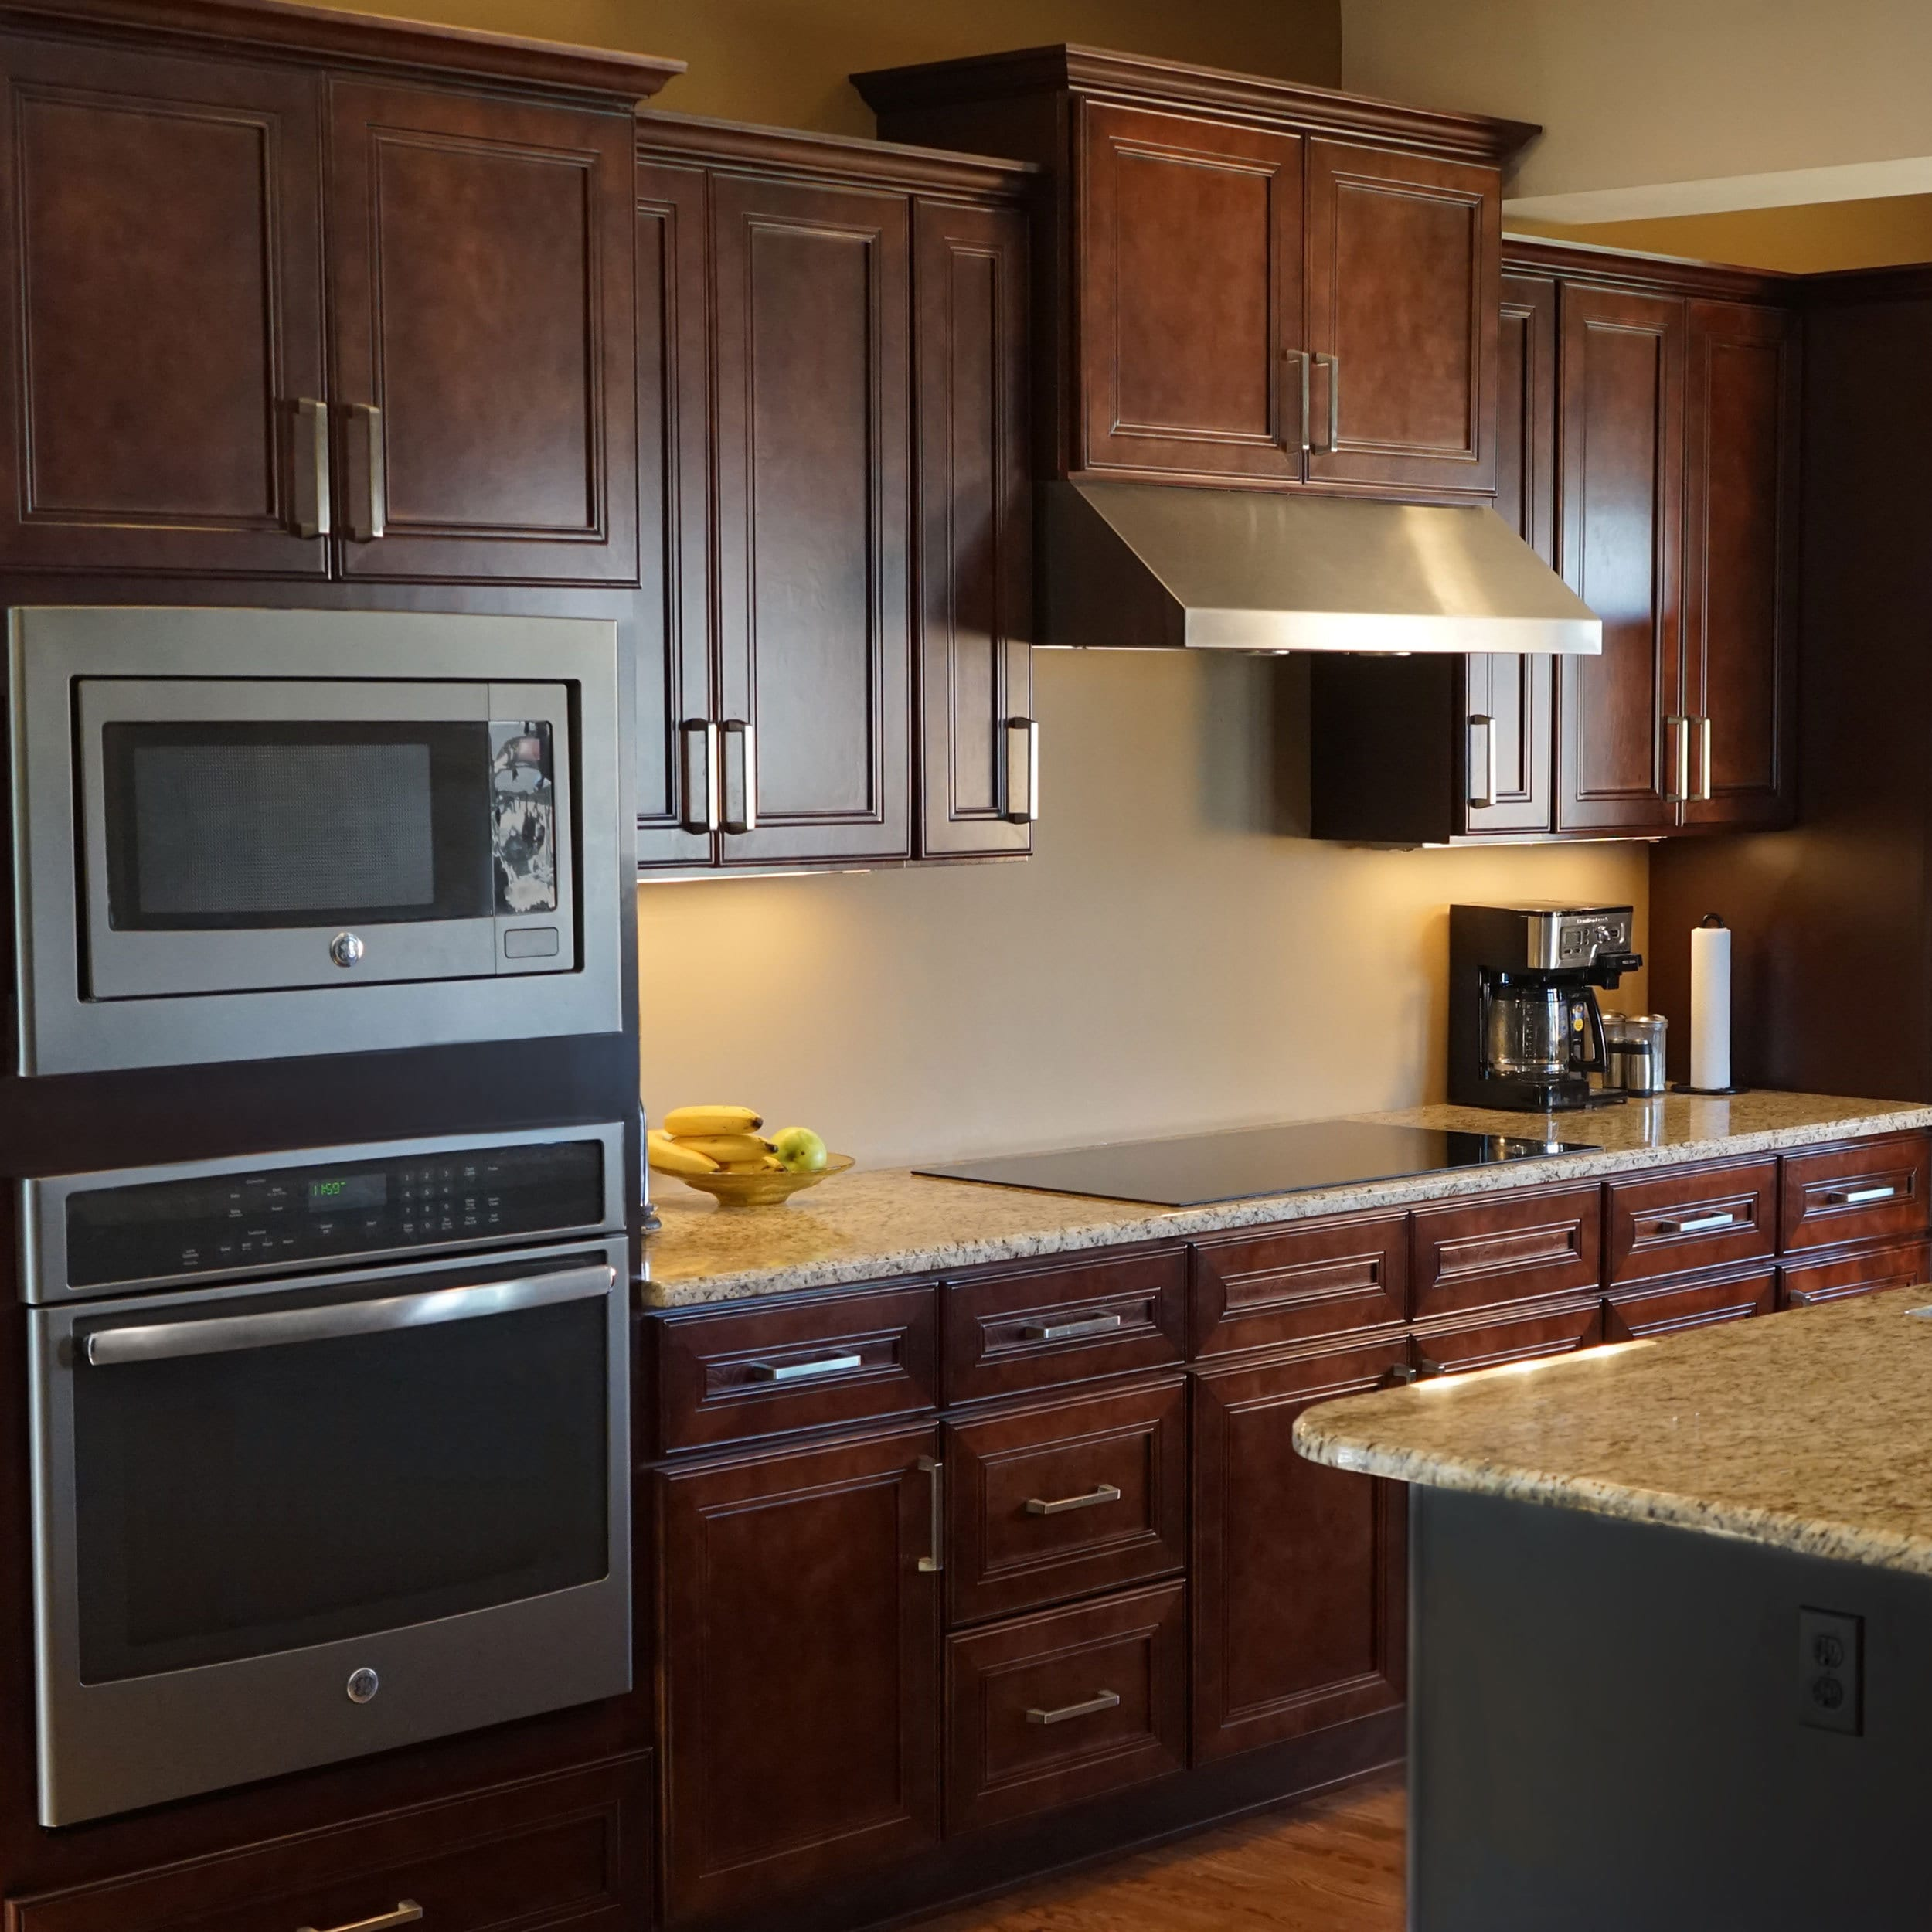 Everyday Cabinets 15 Inch Cherry Mahogany Brown Leo Saddle 3 Drawer Base Kitchen Cabinet Ships To Canada 12315114